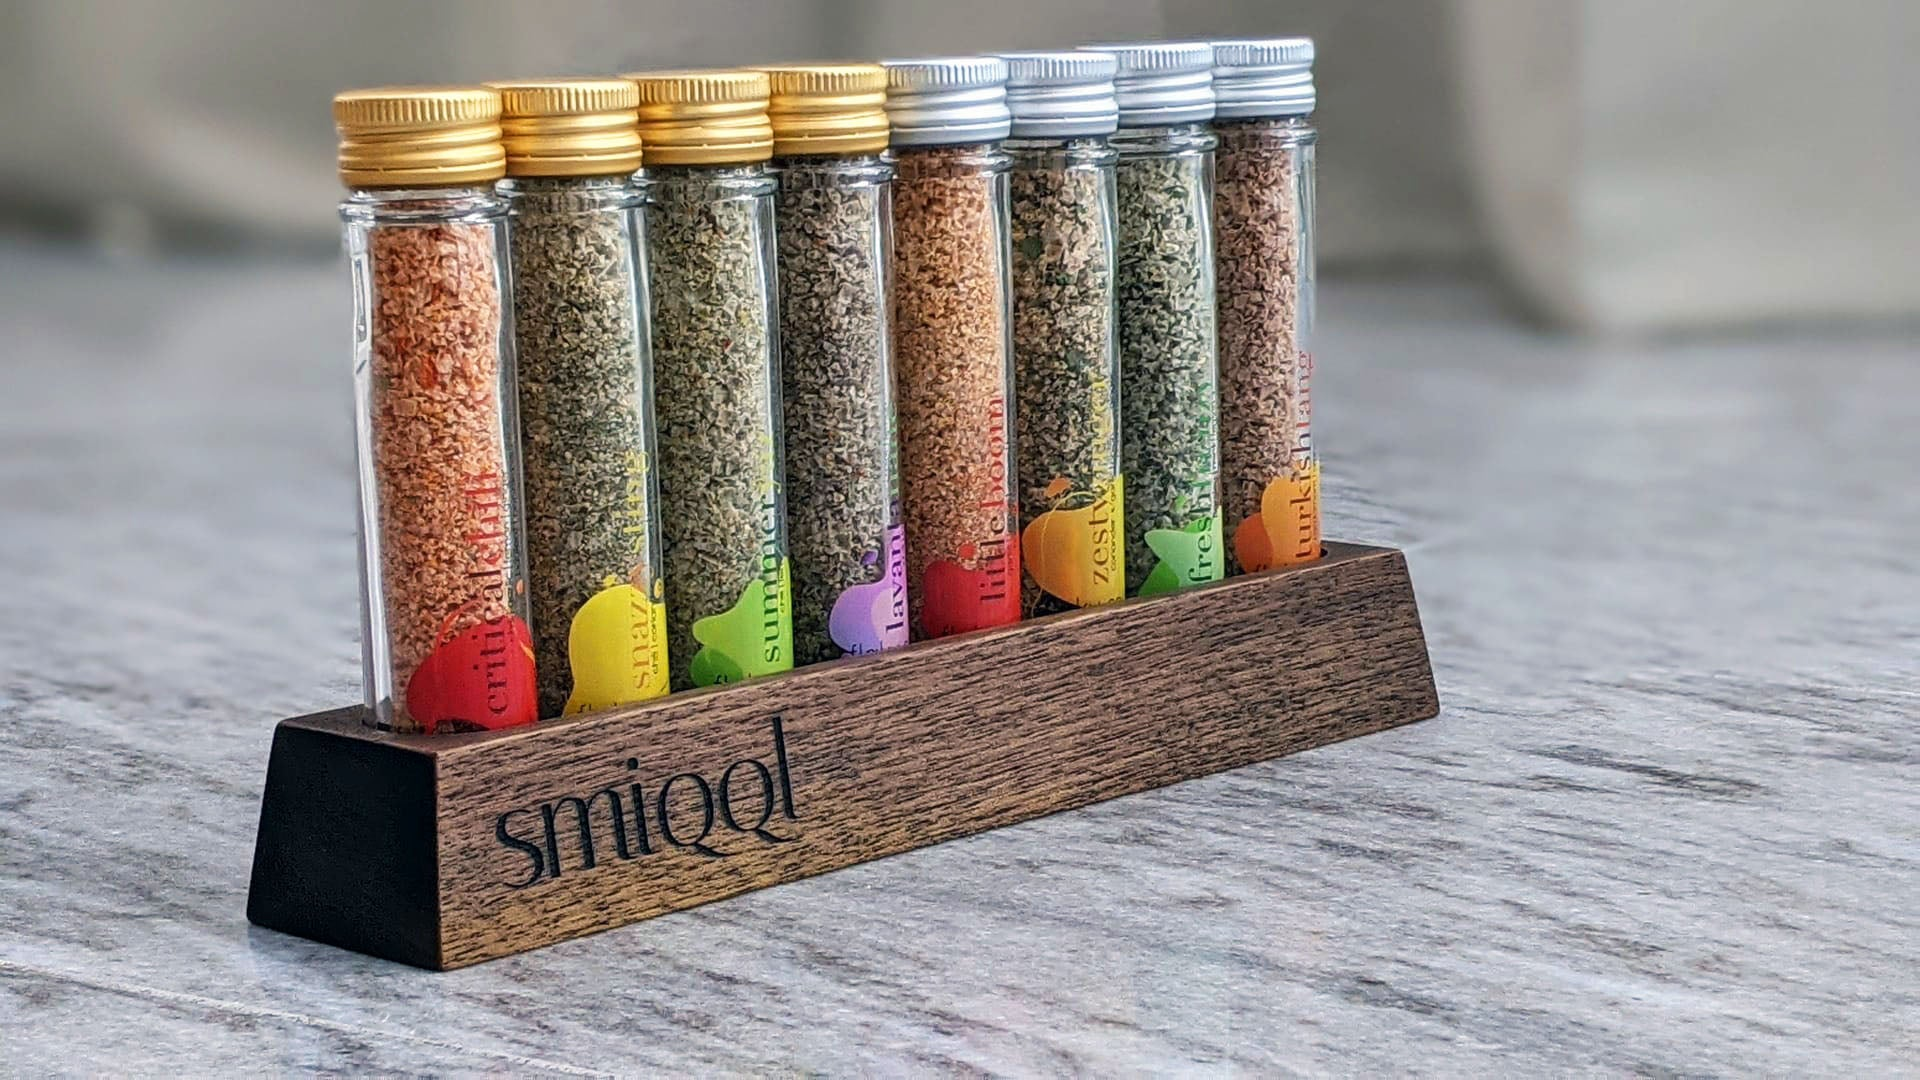 SMIQQL Stand for large Solo flaky salt bottles